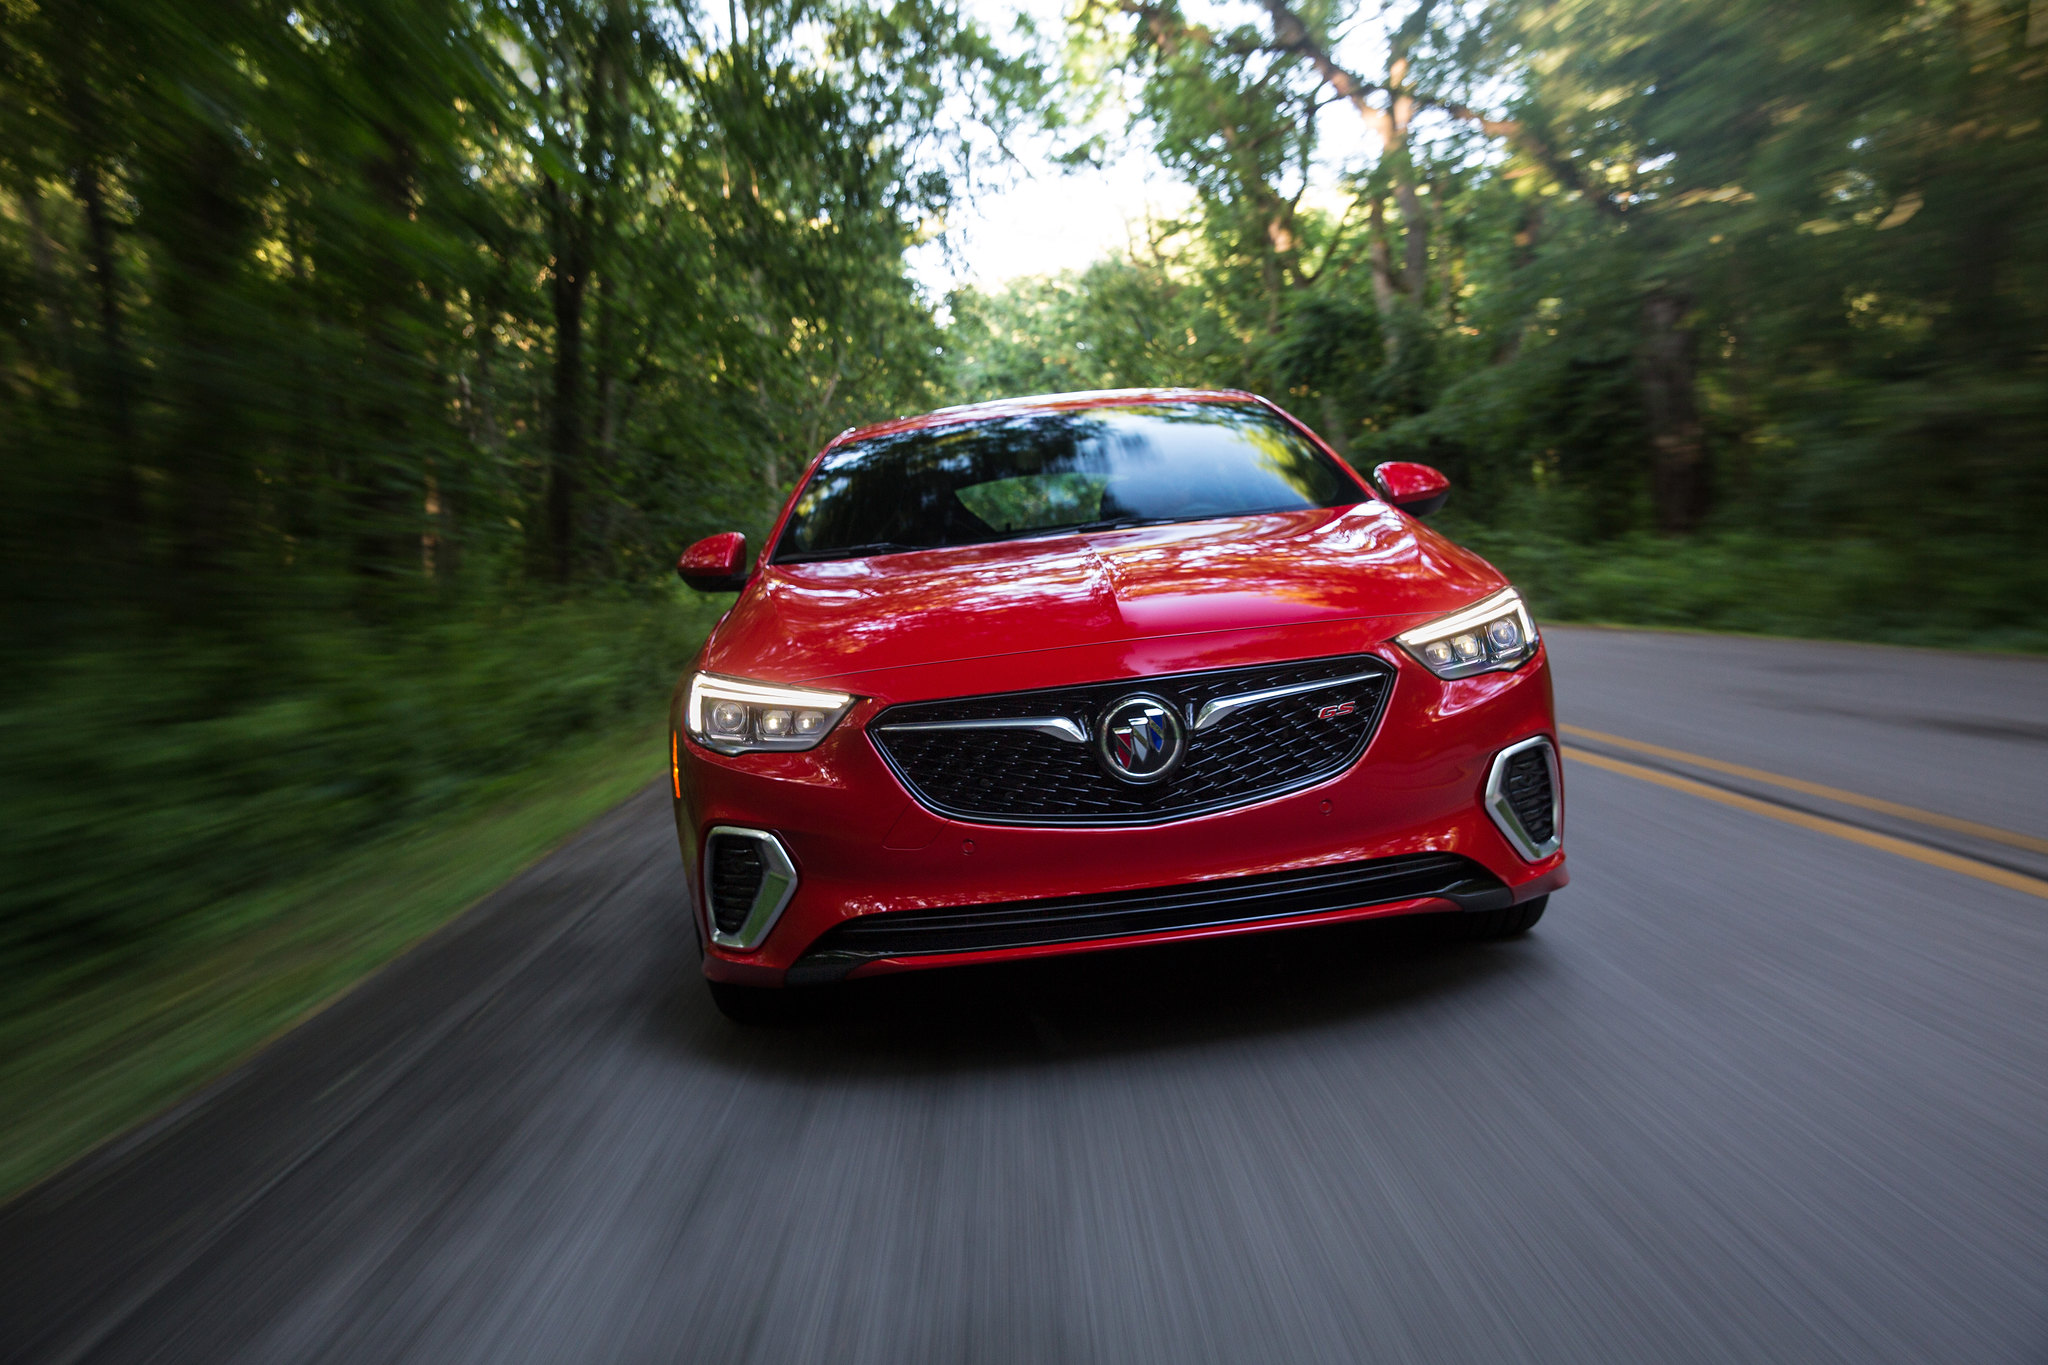 This is the 2018 Buick Regal GS